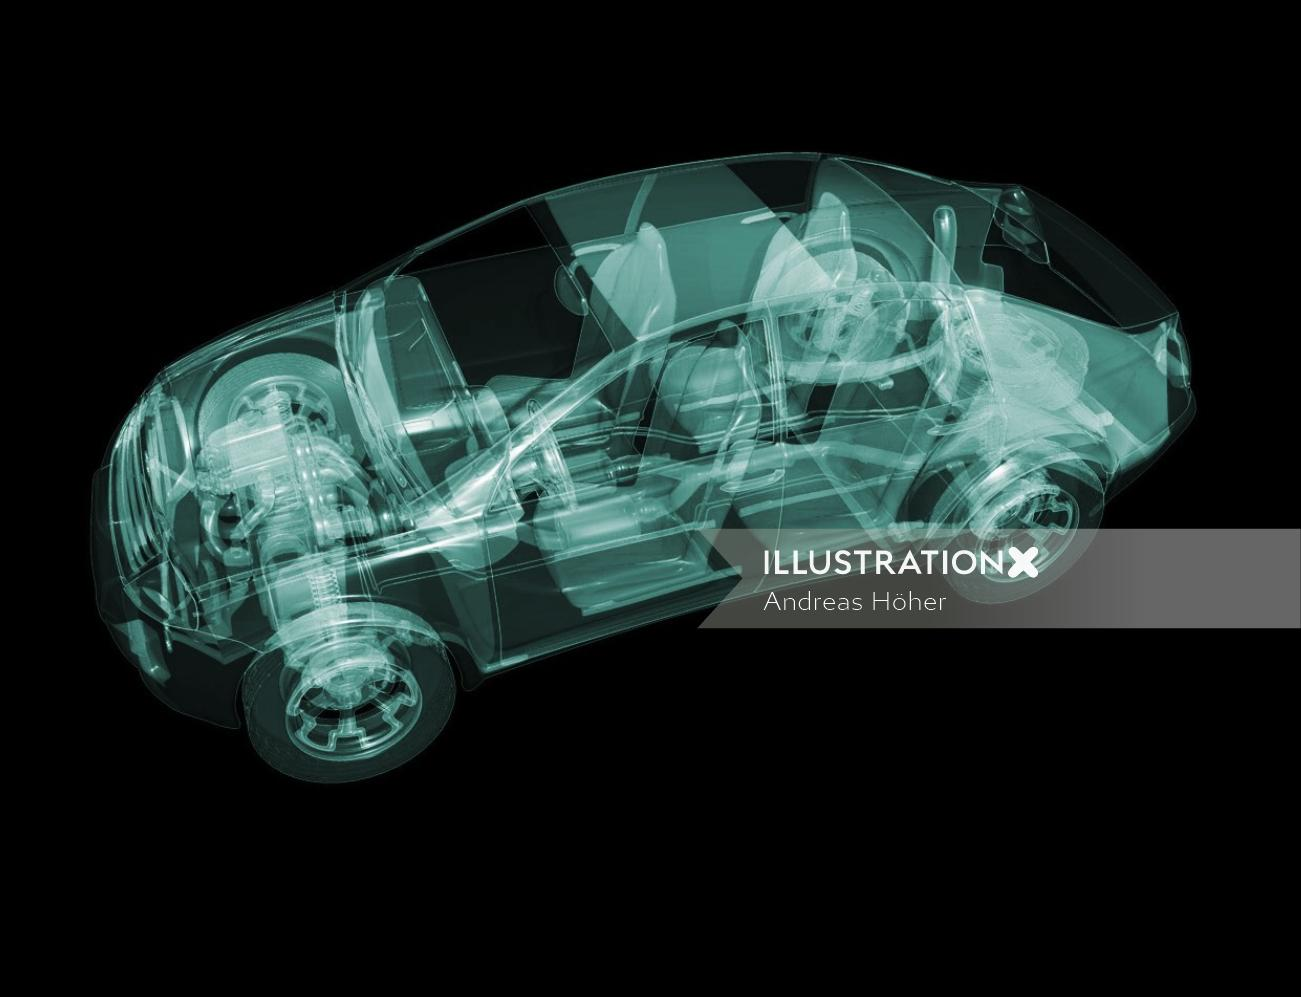 x-ray car 3d illustration